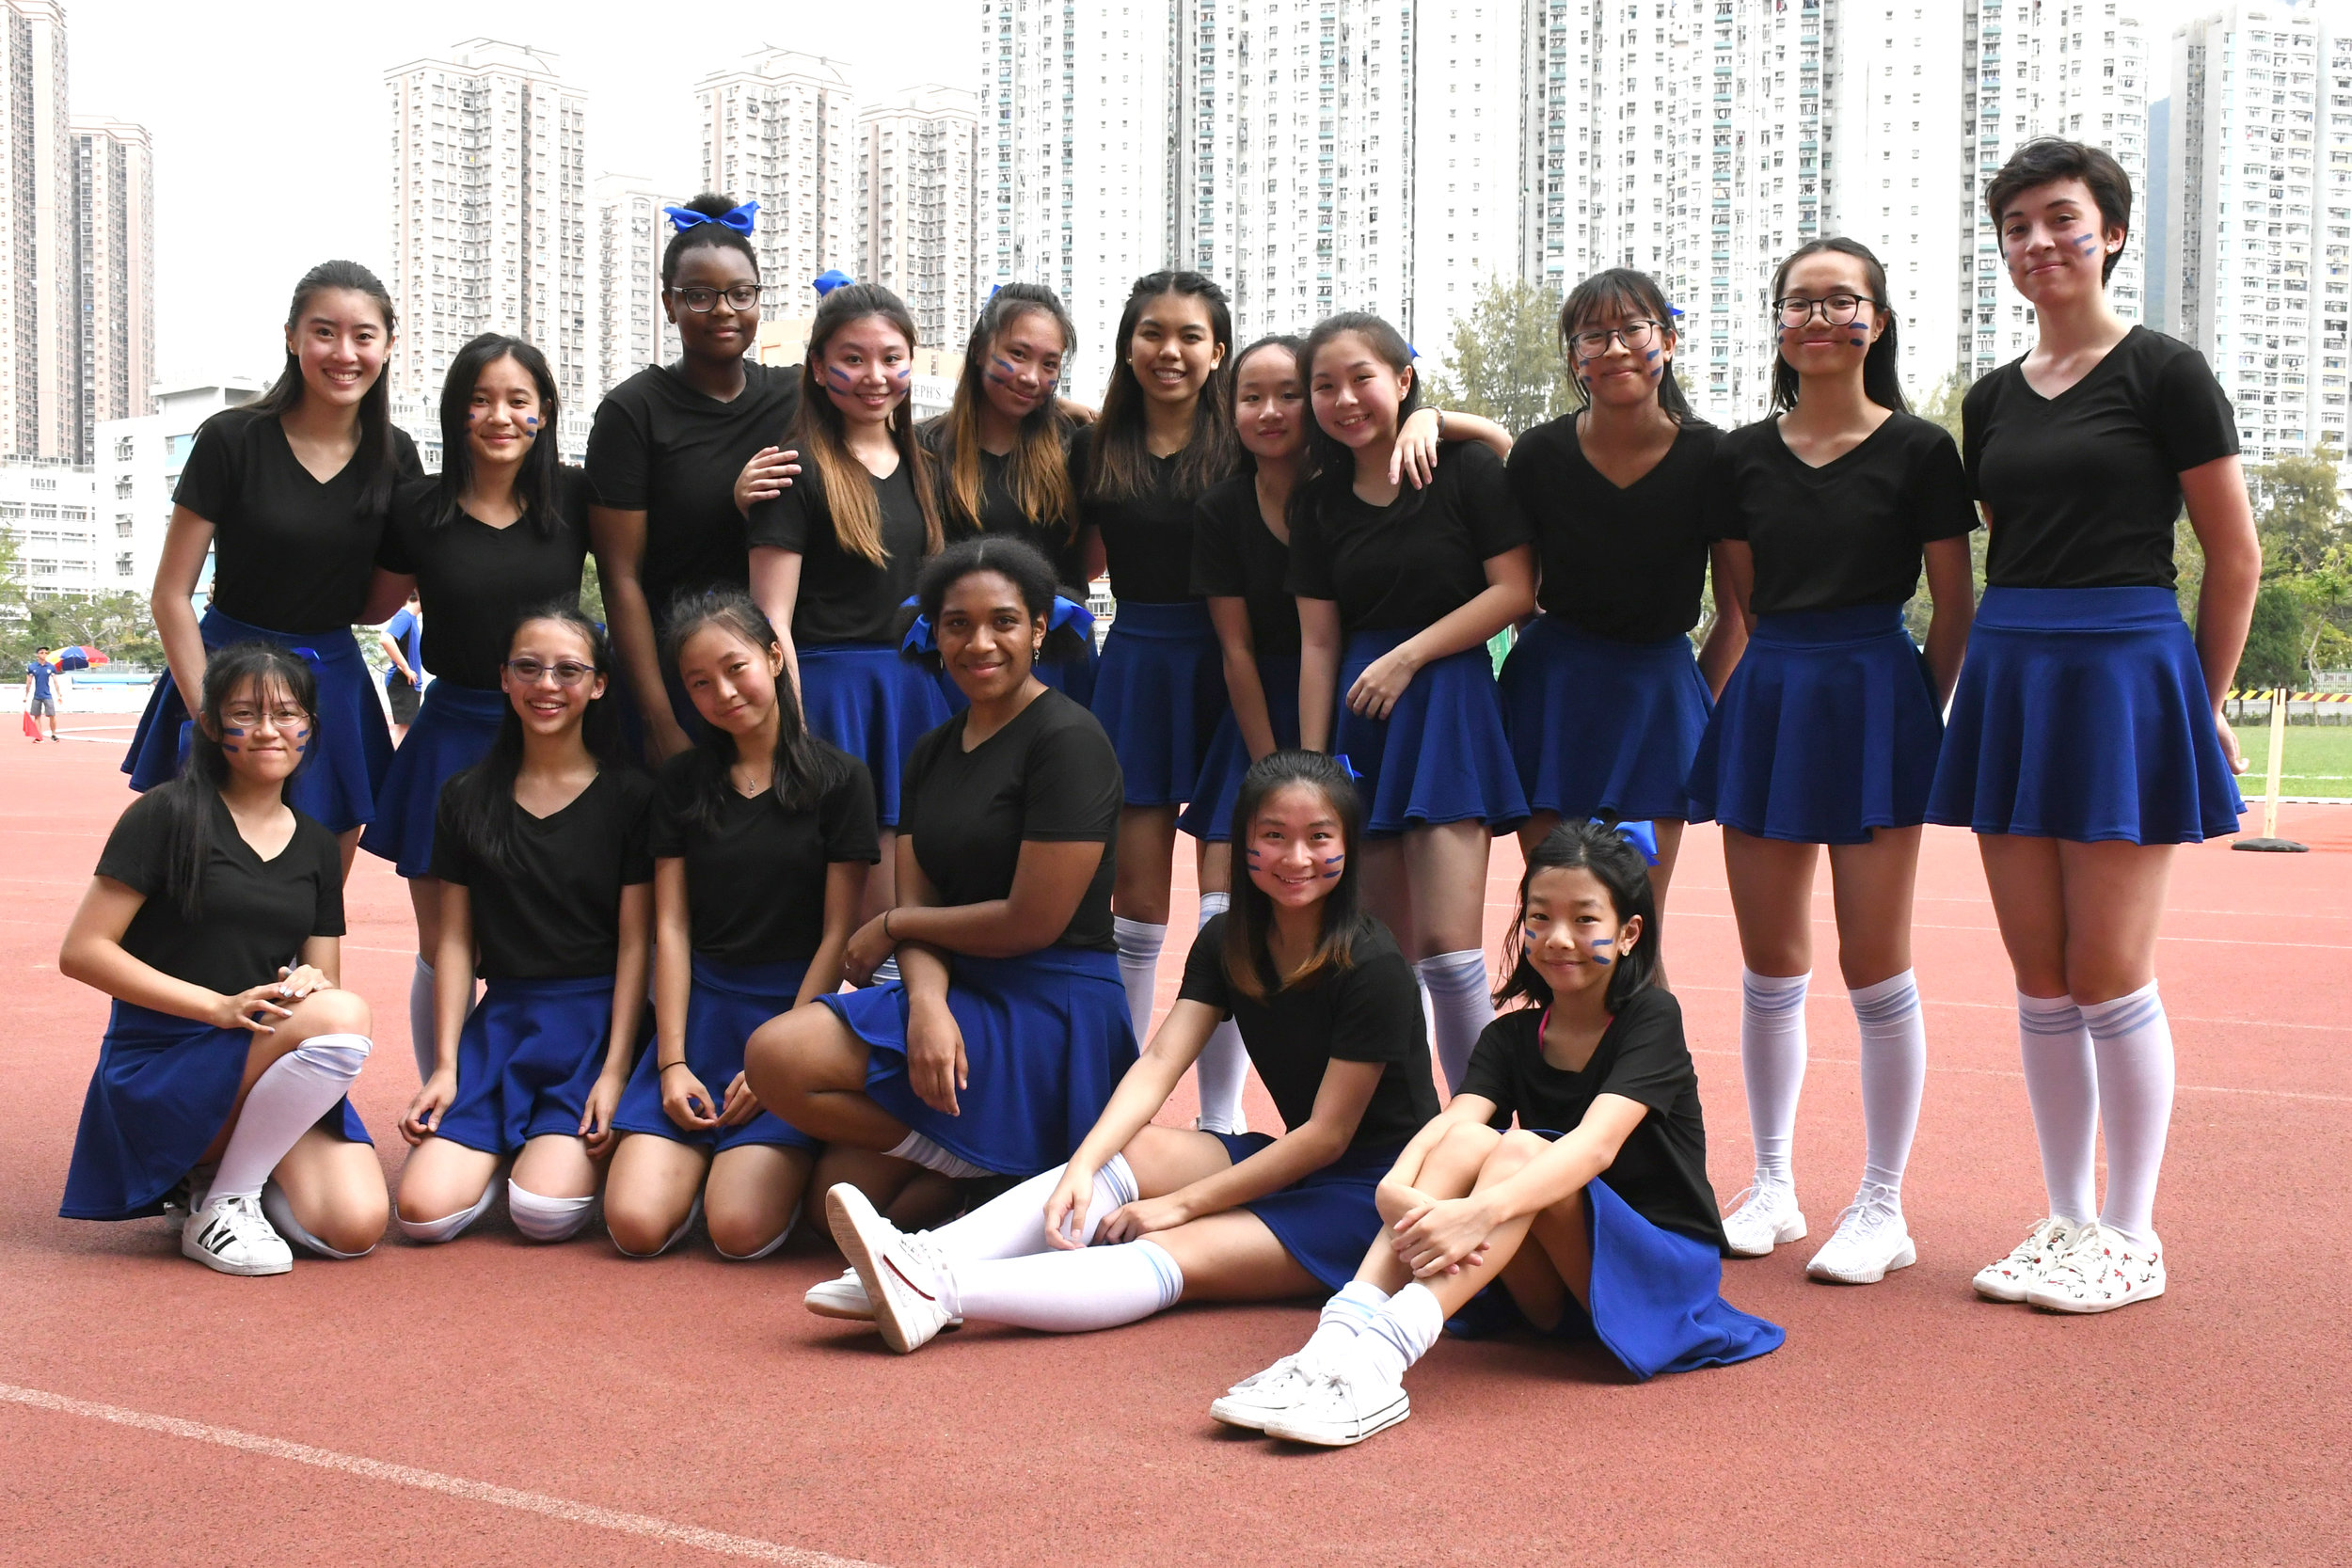 A picture of the Ming House cheerleading team